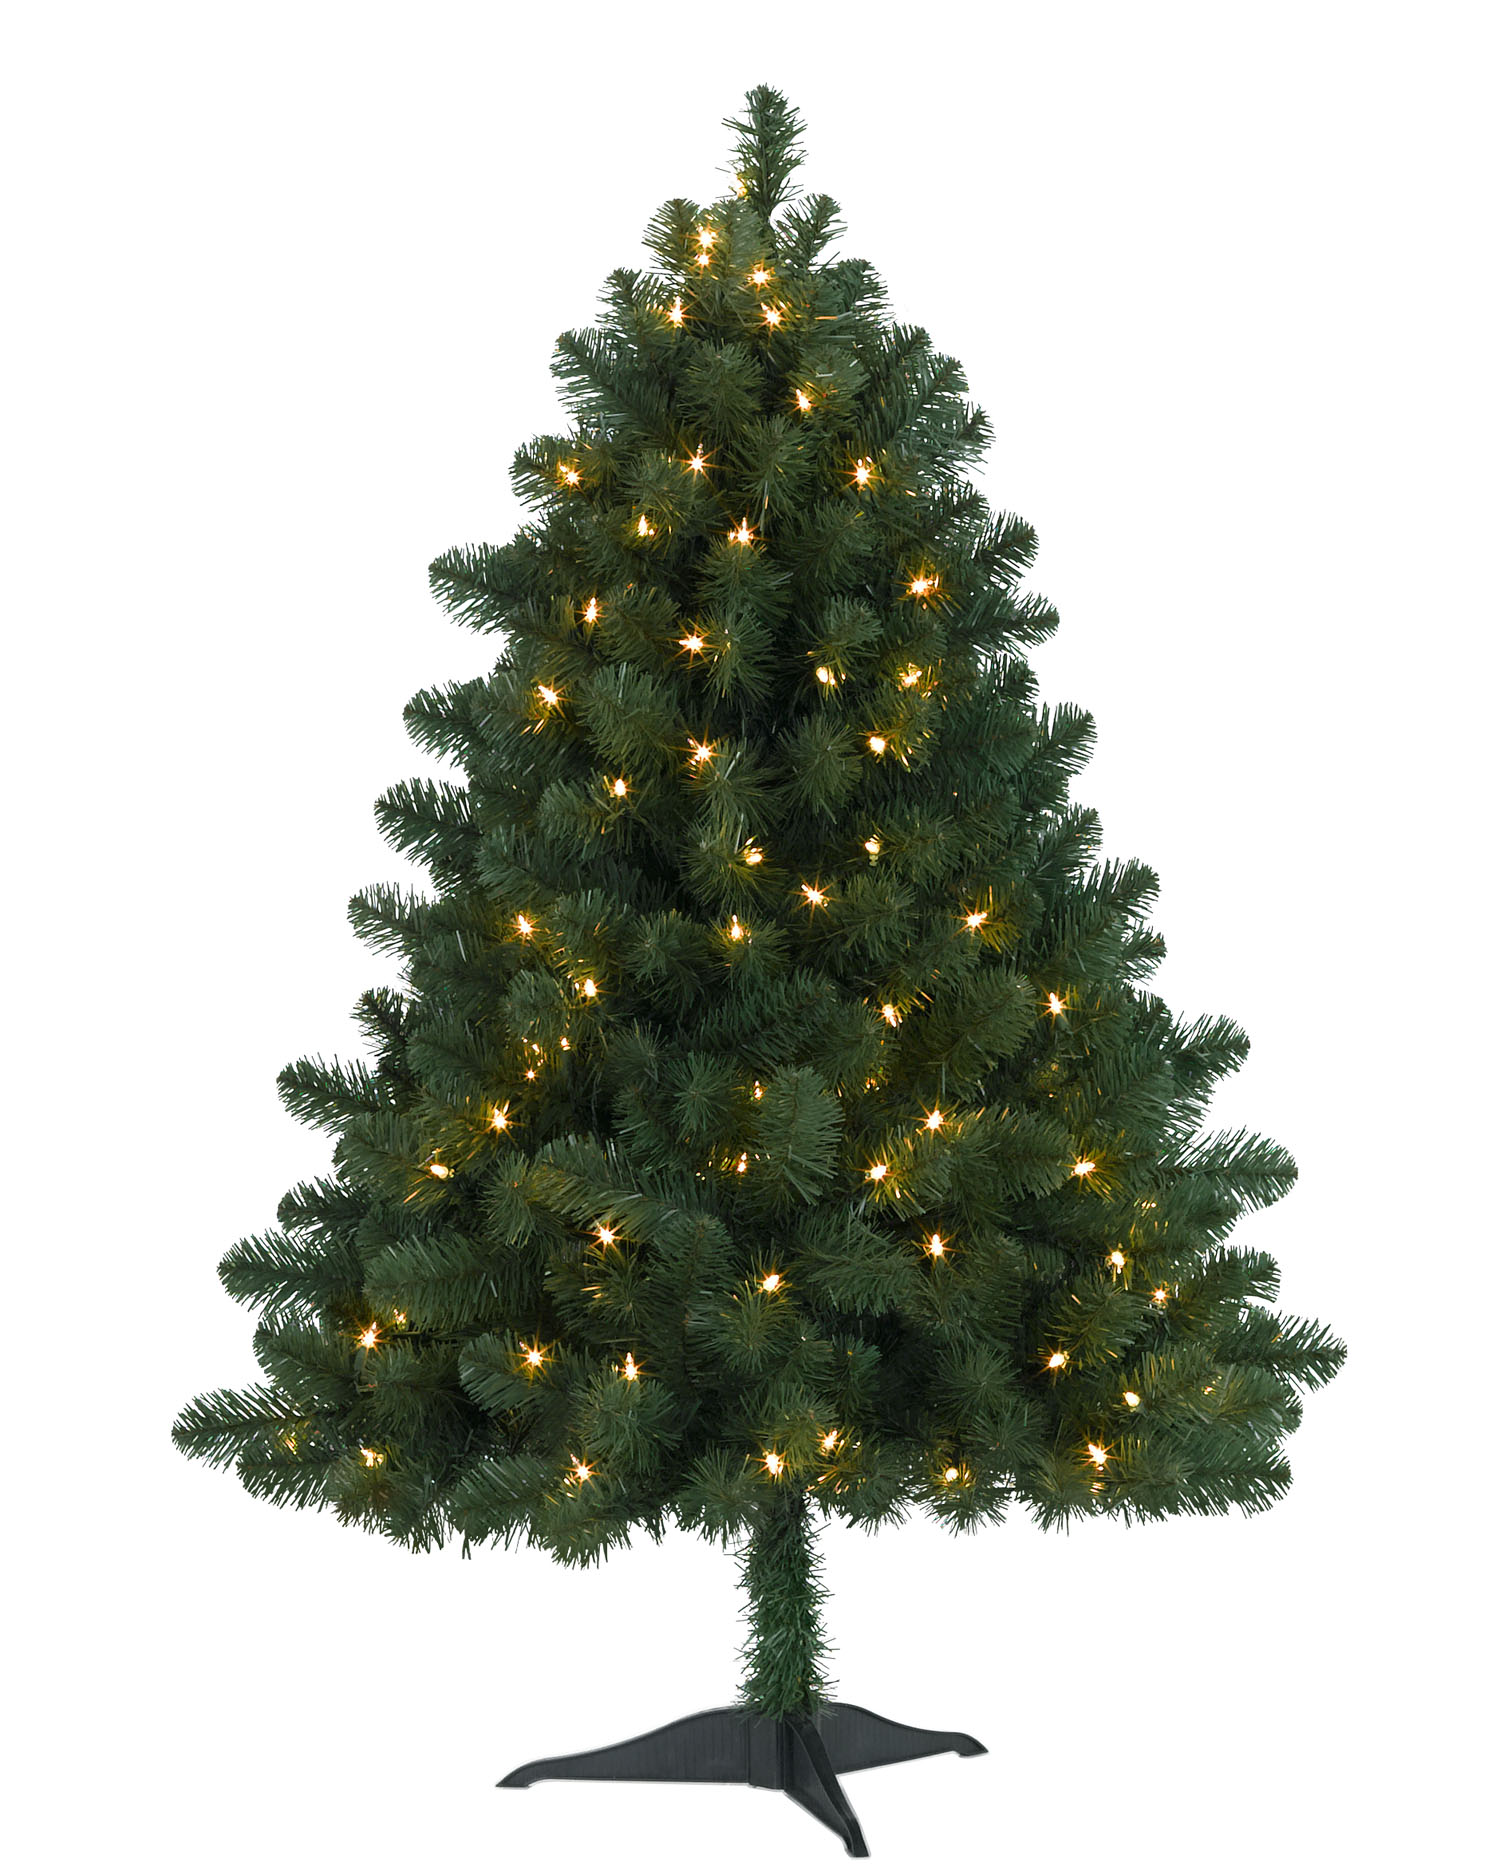 4 foot bethlehem fir clear christmas tree - 4 Foot White Christmas Tree